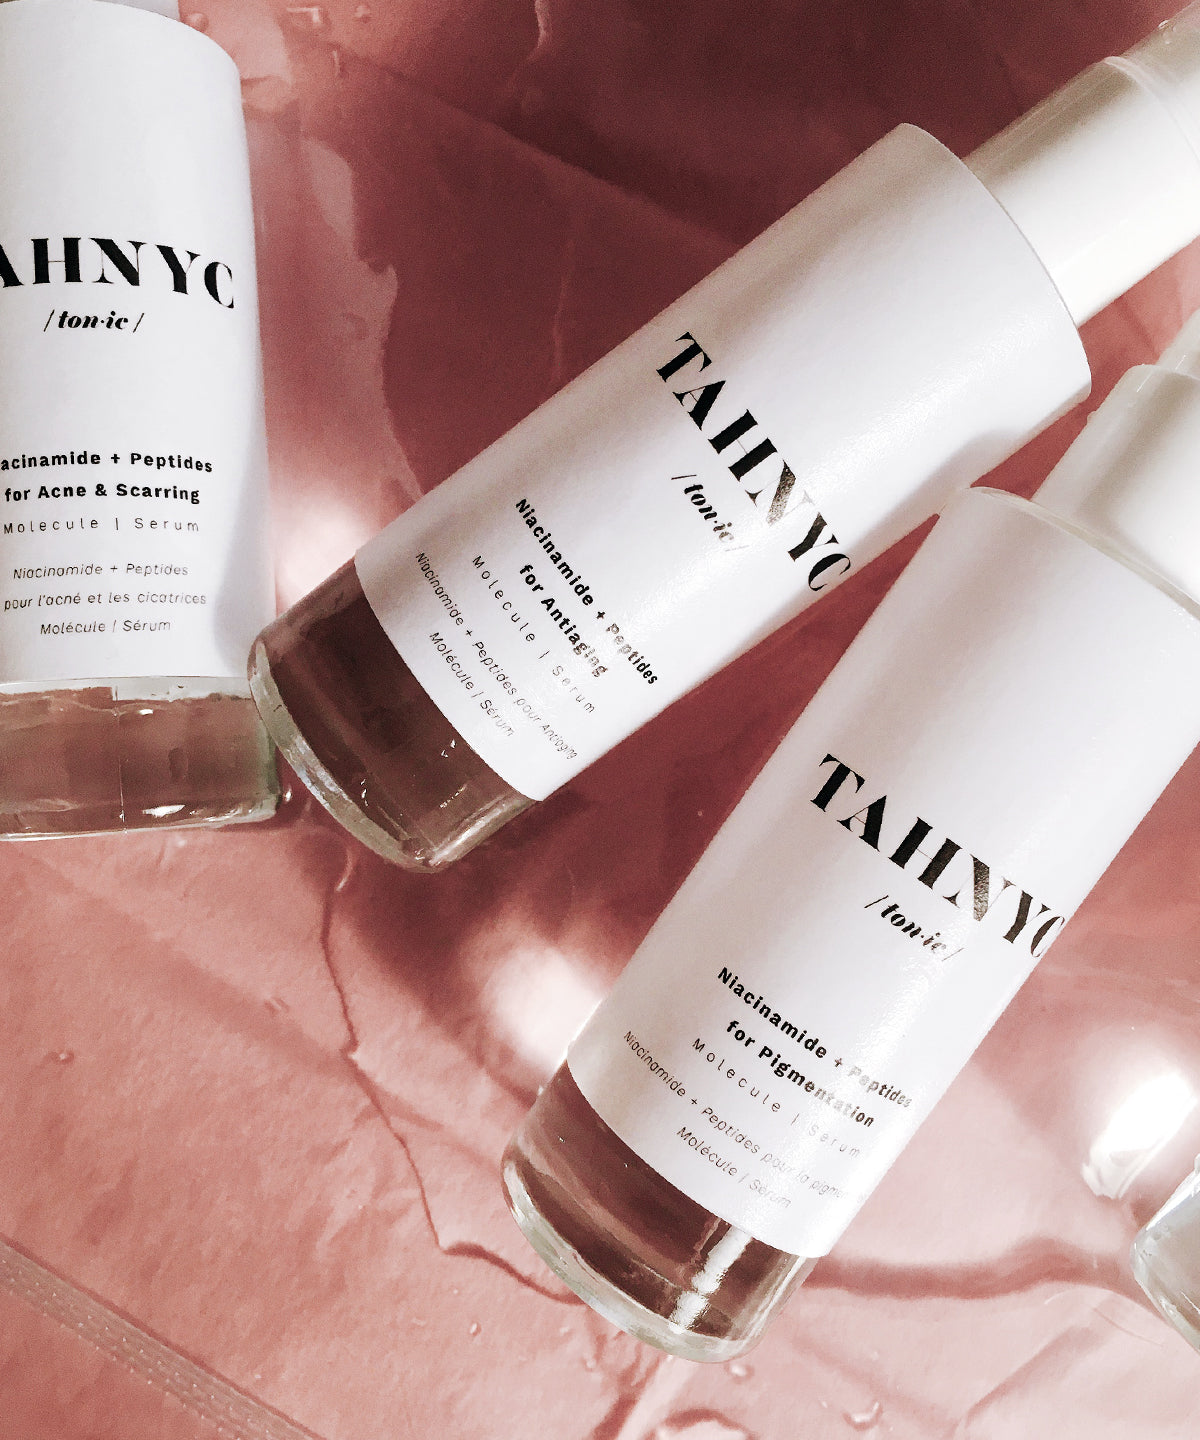 Niacinamide + Peptides for Antiaging - Aihiki Skin